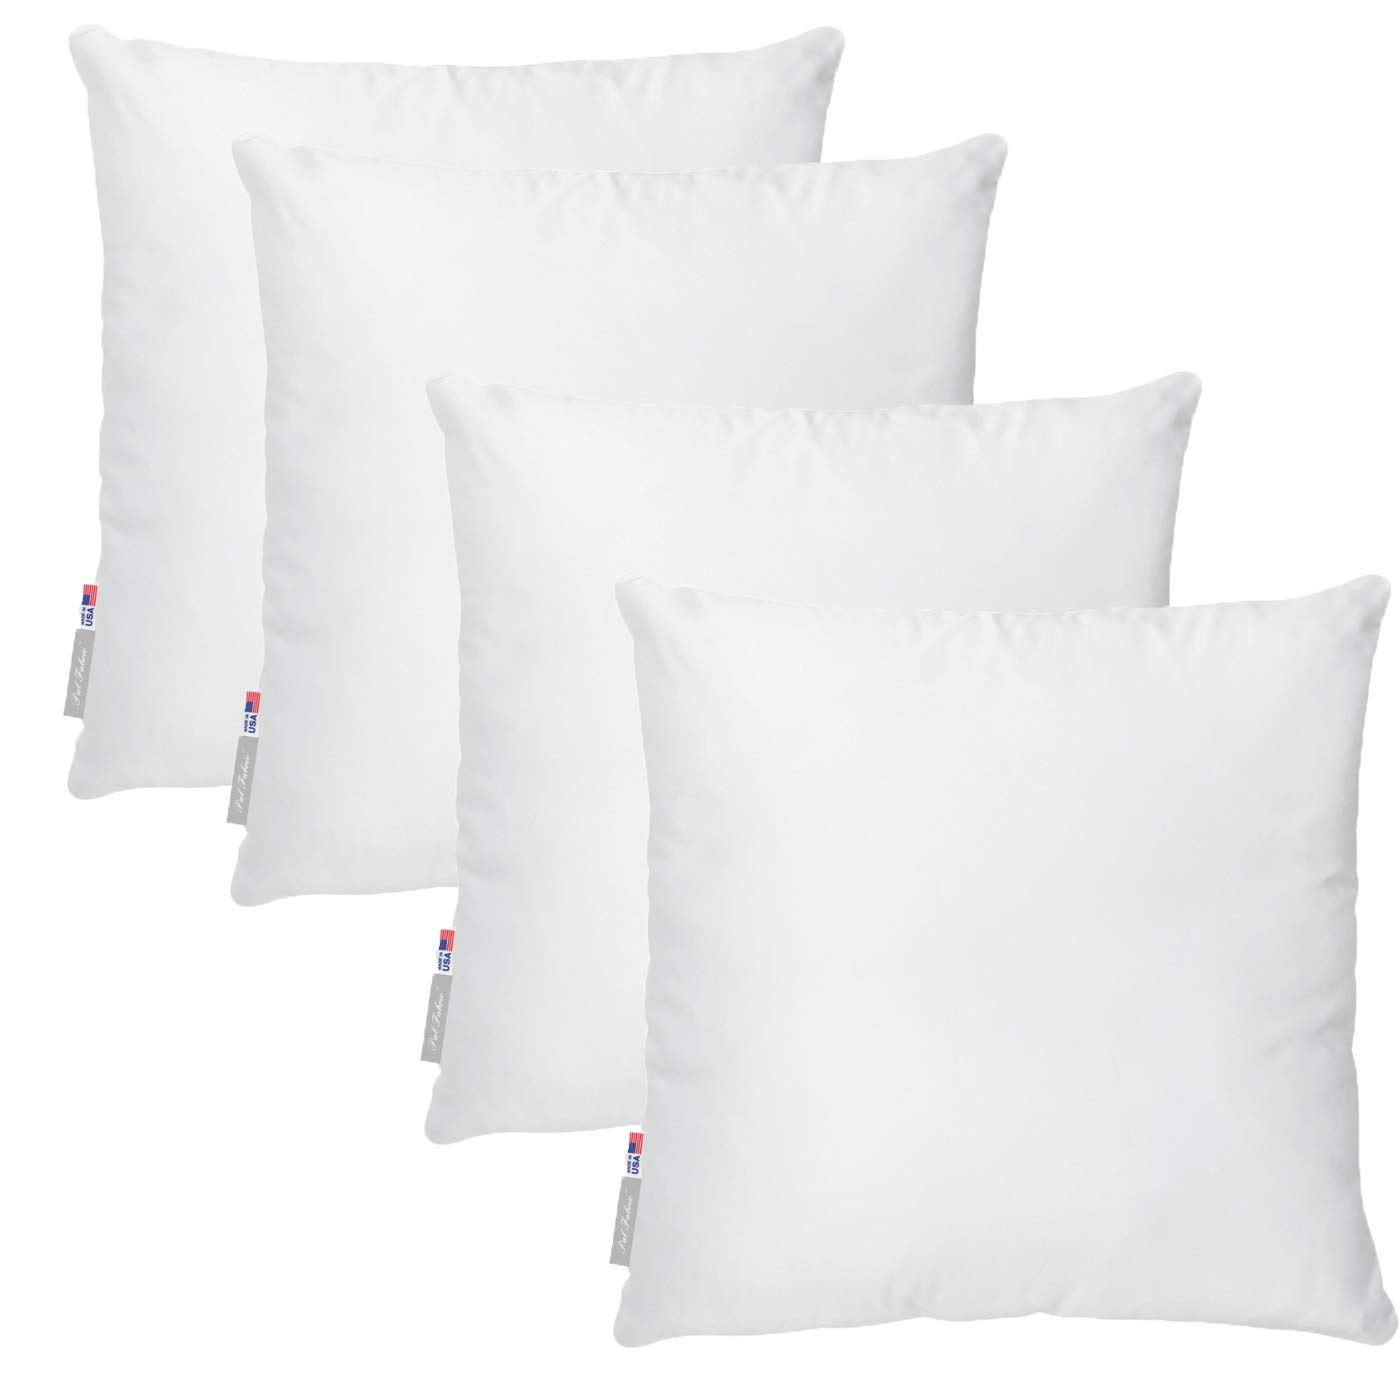 Pal Fabric Pack of 4 20x20 Soft Cotton Feel Microfiber Square Pillow Insert for Sham or Decorative Pillow Made in USA (20x20)